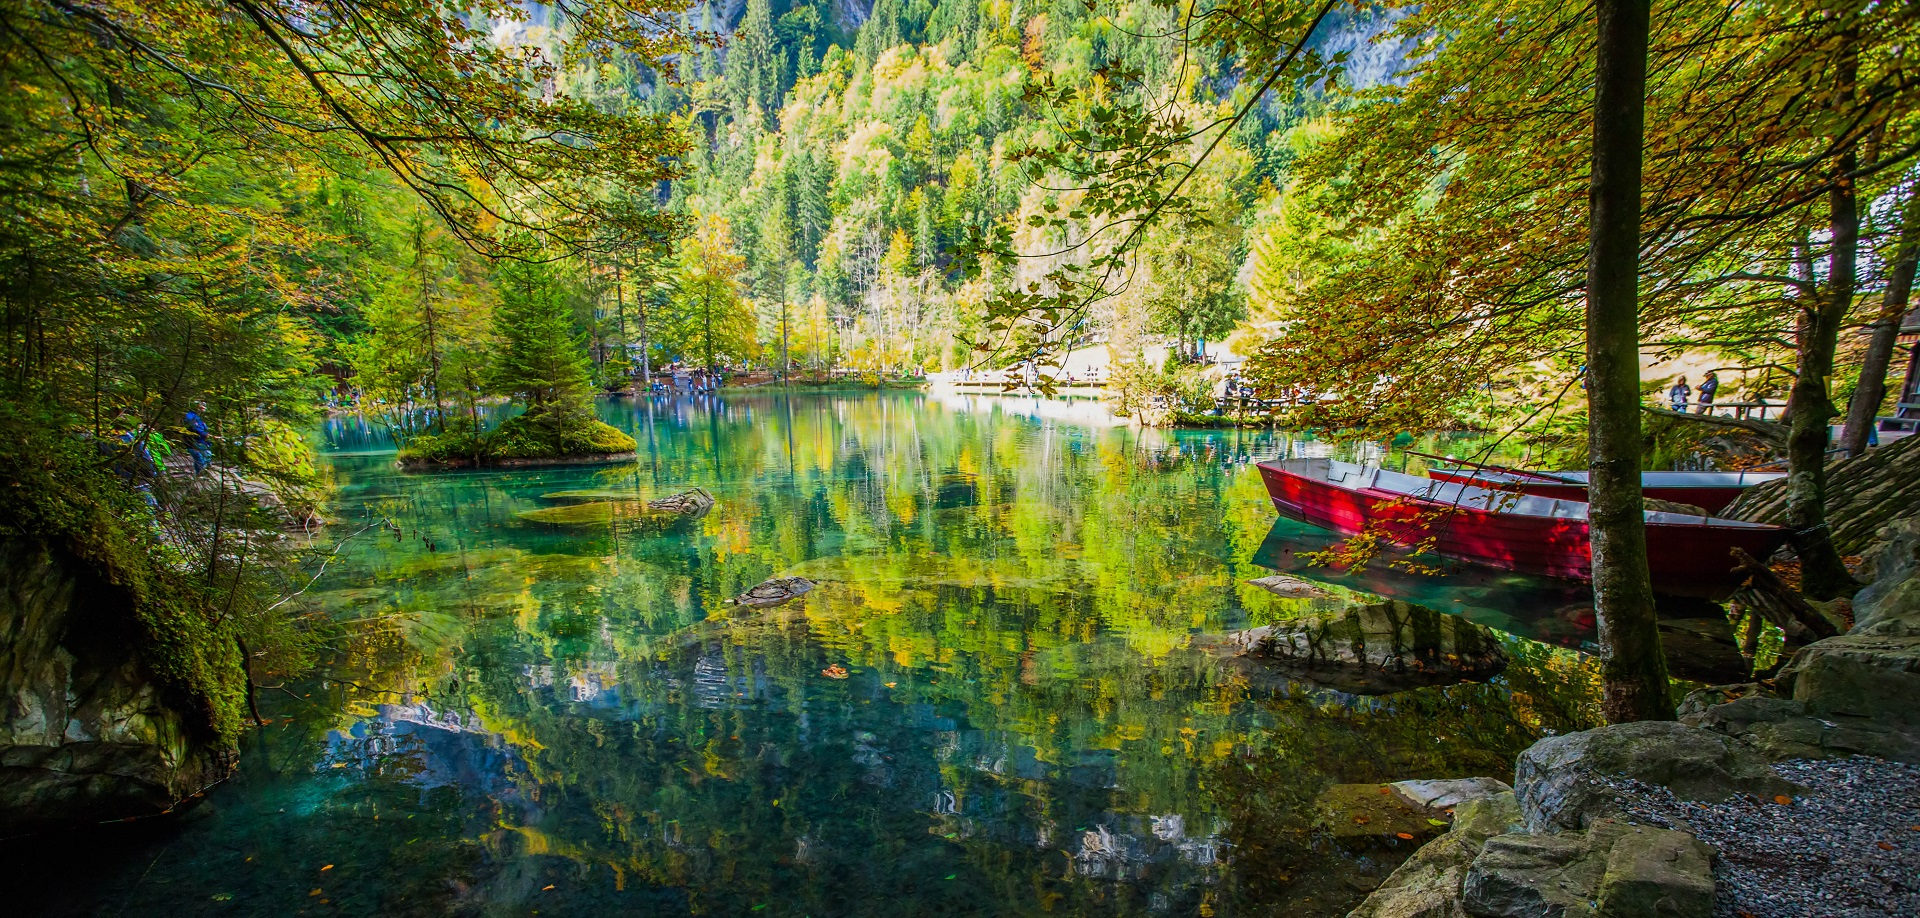 Blausee Nature Park